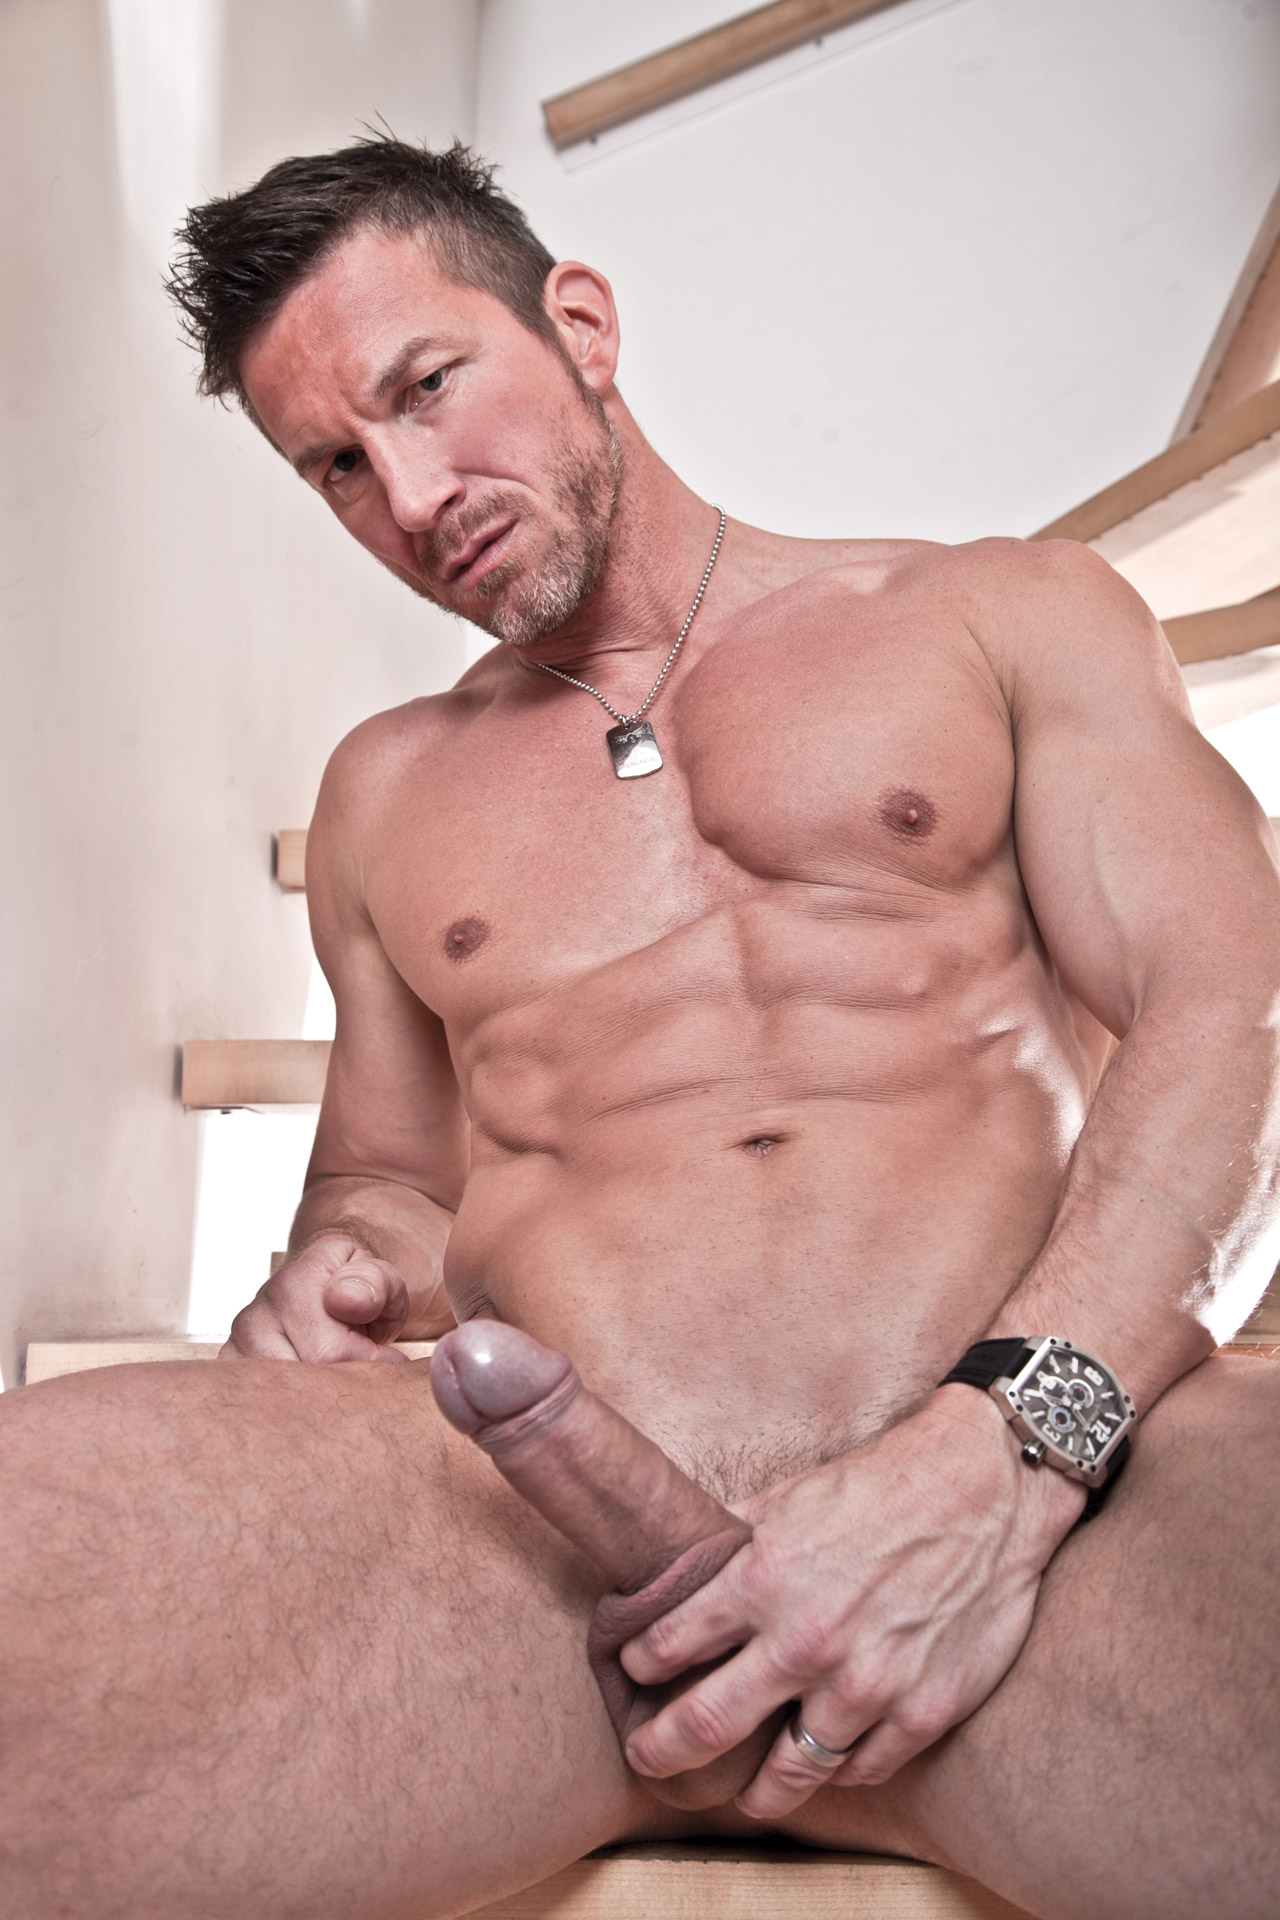 free online gay porn chat rooms